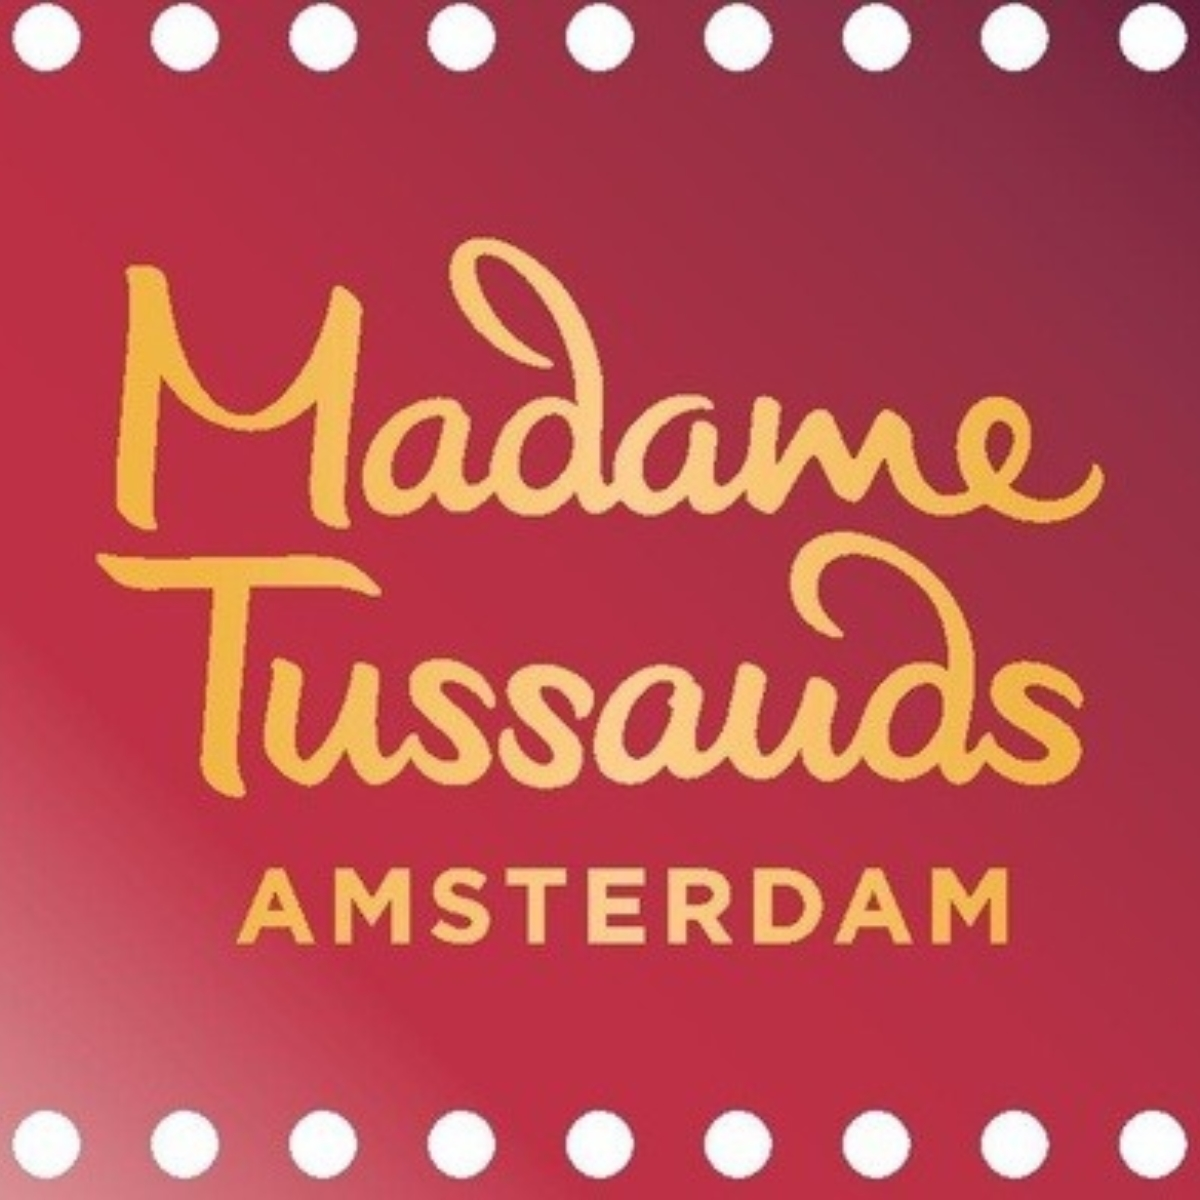 Madame Tussauds Amsterdam - Daily Ticket Images